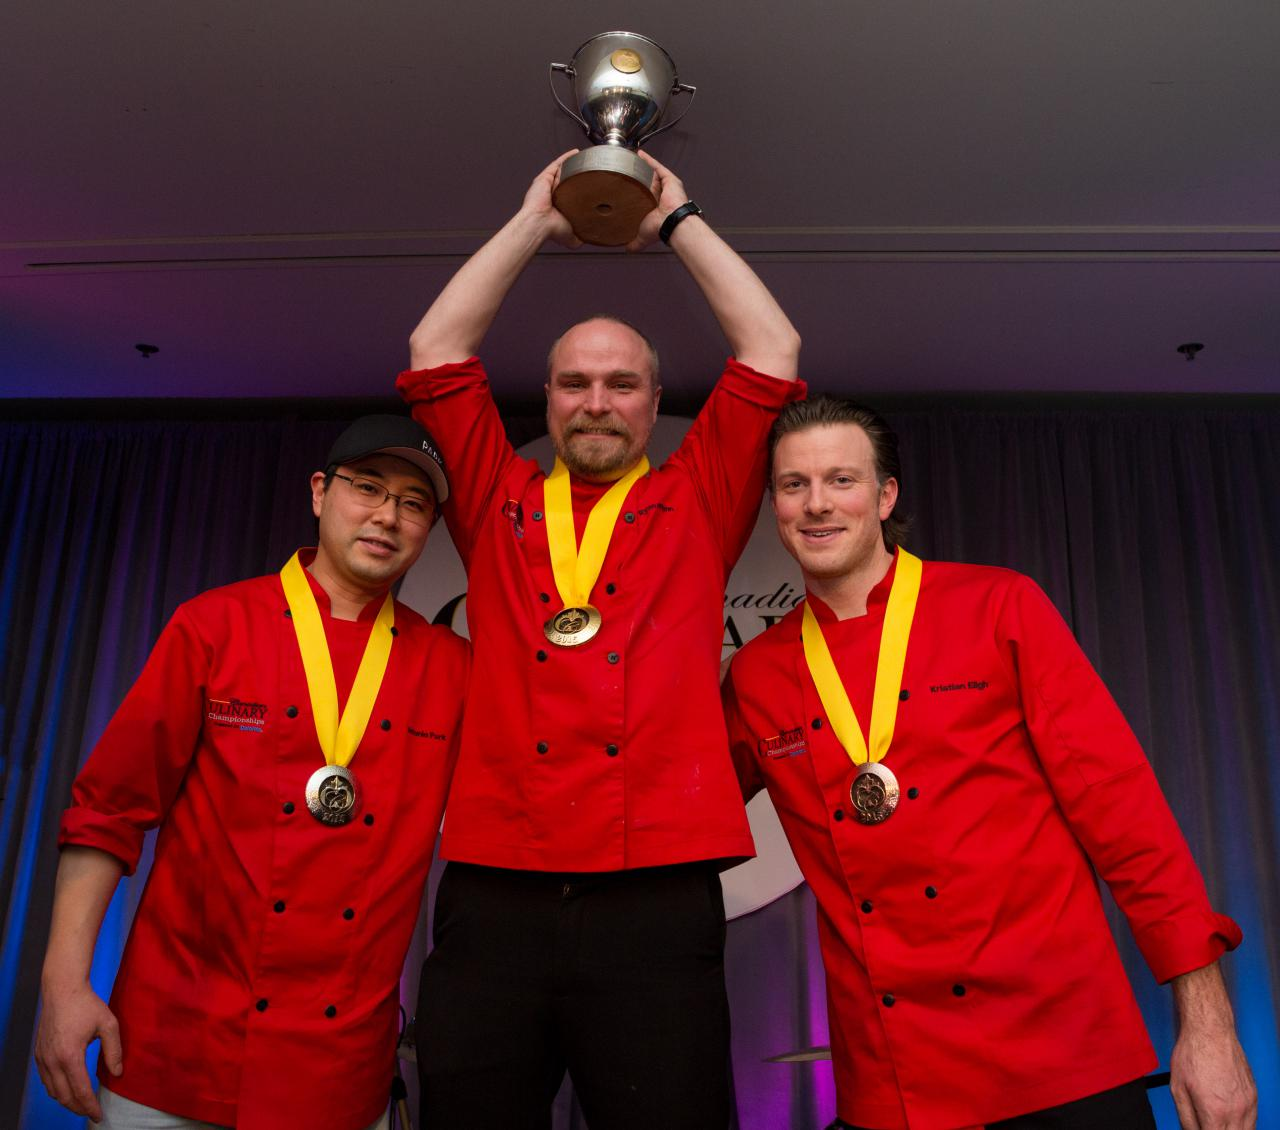 Yuri Akuney photo courtesy Gold Medal Plates - Canadian Culinary Championships winners on podium